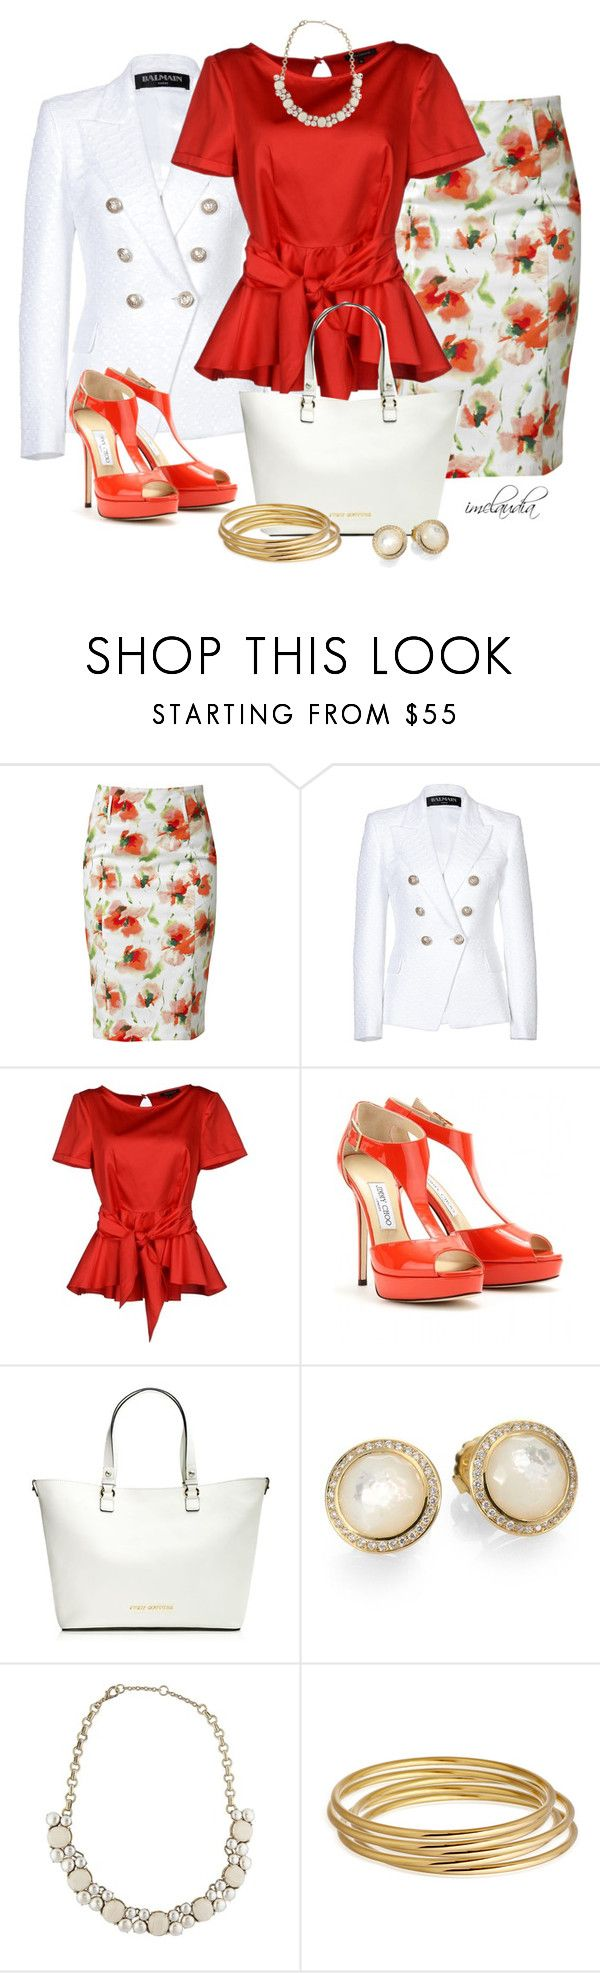 """Peplum and Poppies"" by imclaudia-1 ❤ liked on Polyvore featuring Raxevsky, Balmain, Tara Jarmon, Jimmy Choo, Juicy Couture, Ippolita, Gerard Yosca and Astley Clarke"